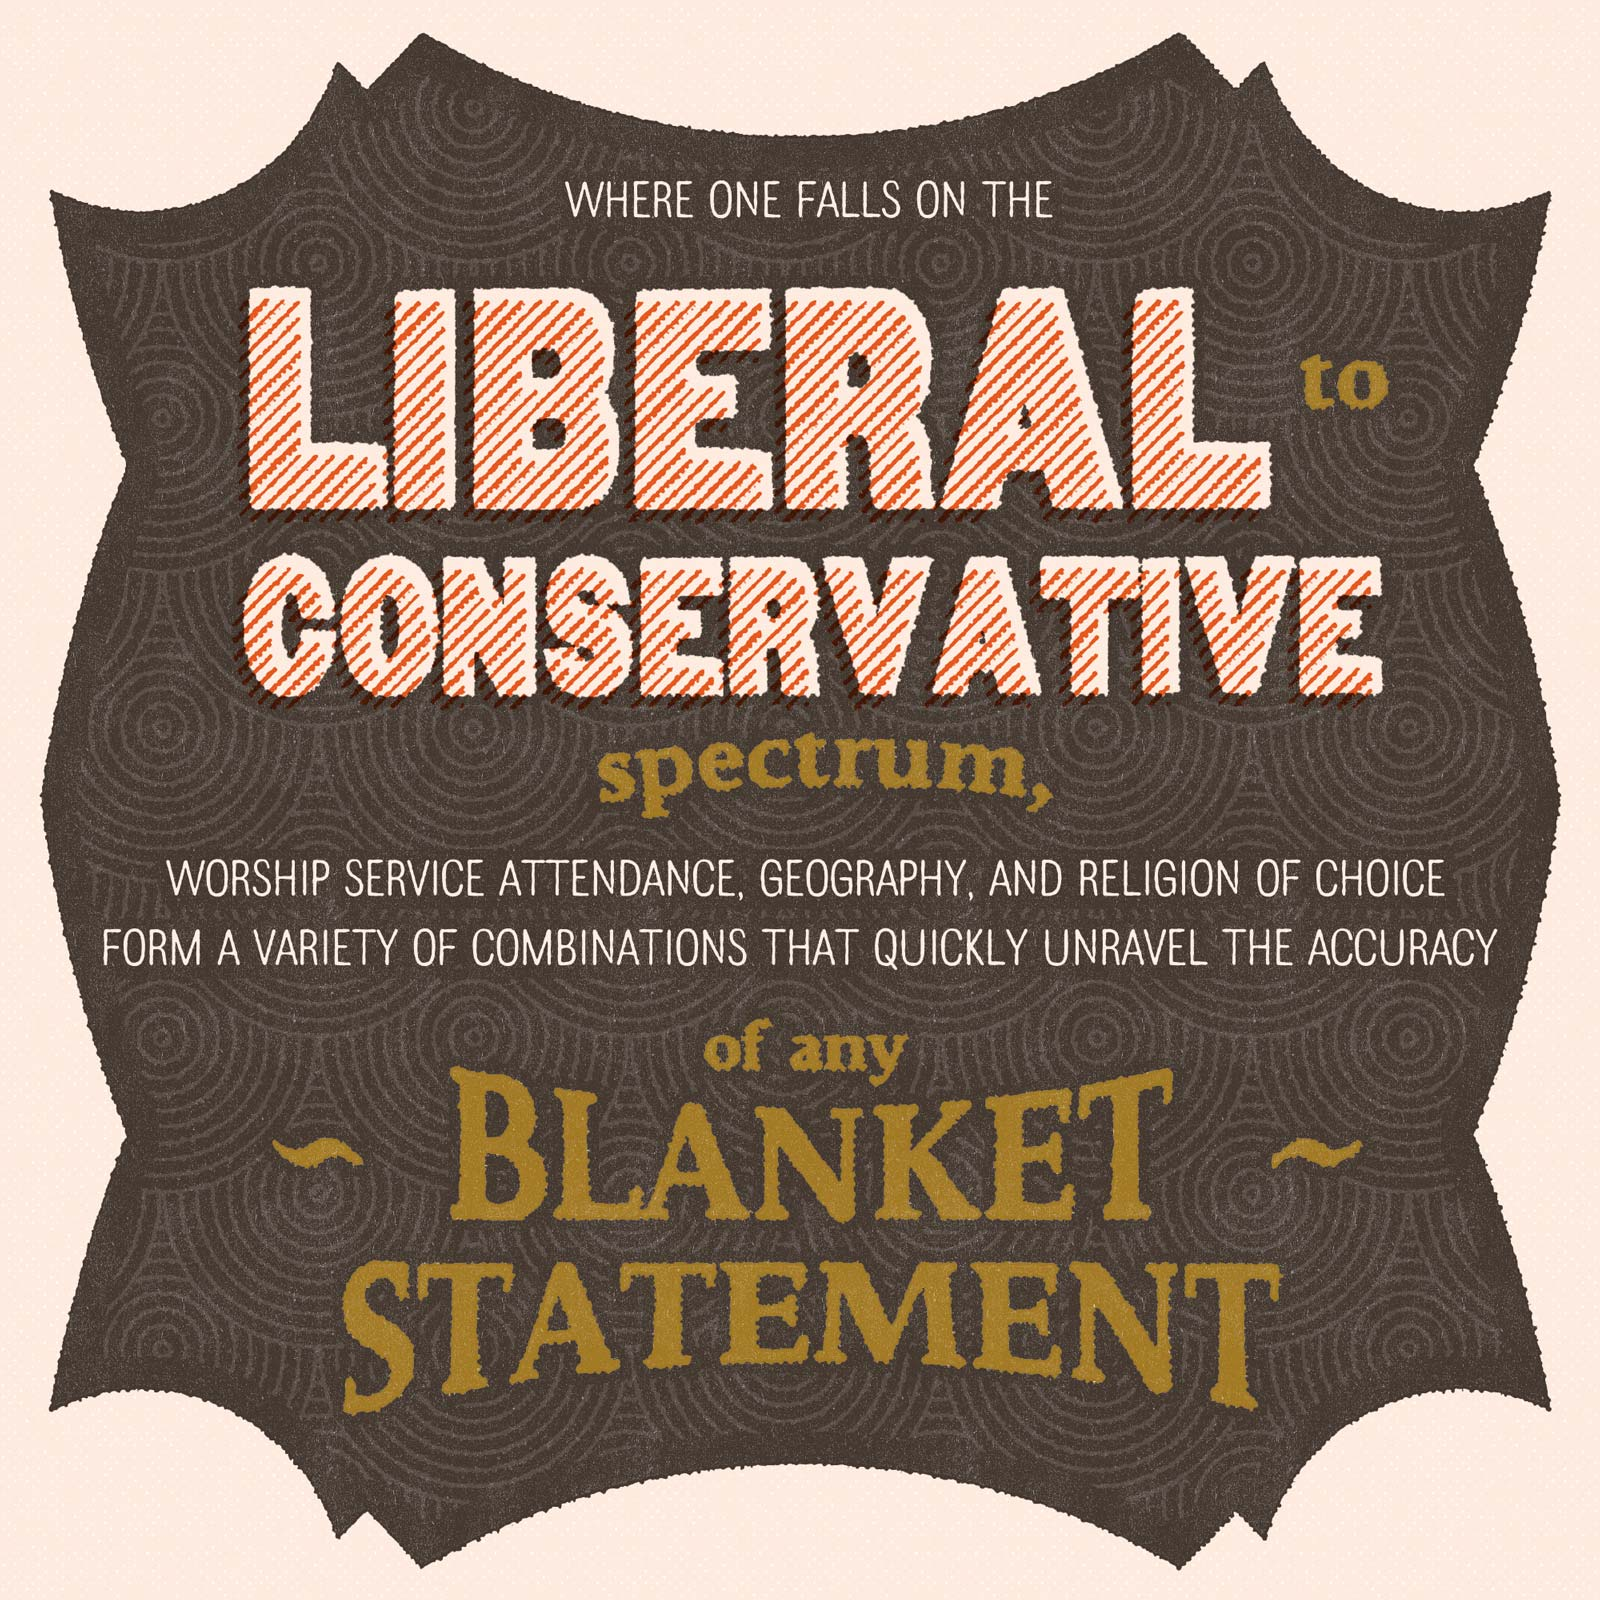 Where on falls on the liberal to conservative spectrum, worship service attendance, geography, and religion of choice form a variety of combinations that quickly unravel the accuracy of any blanket statement.